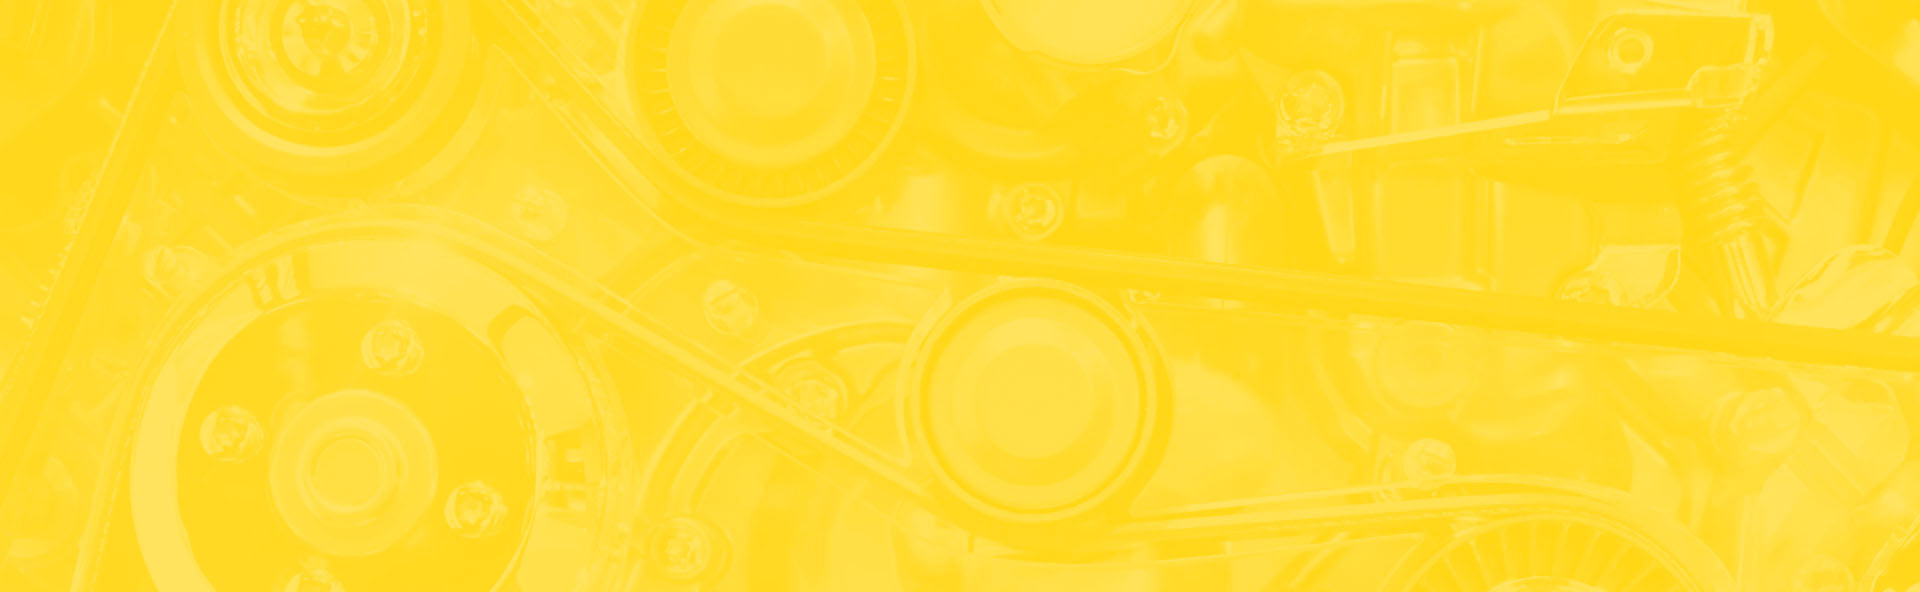 slider-yellowbackground